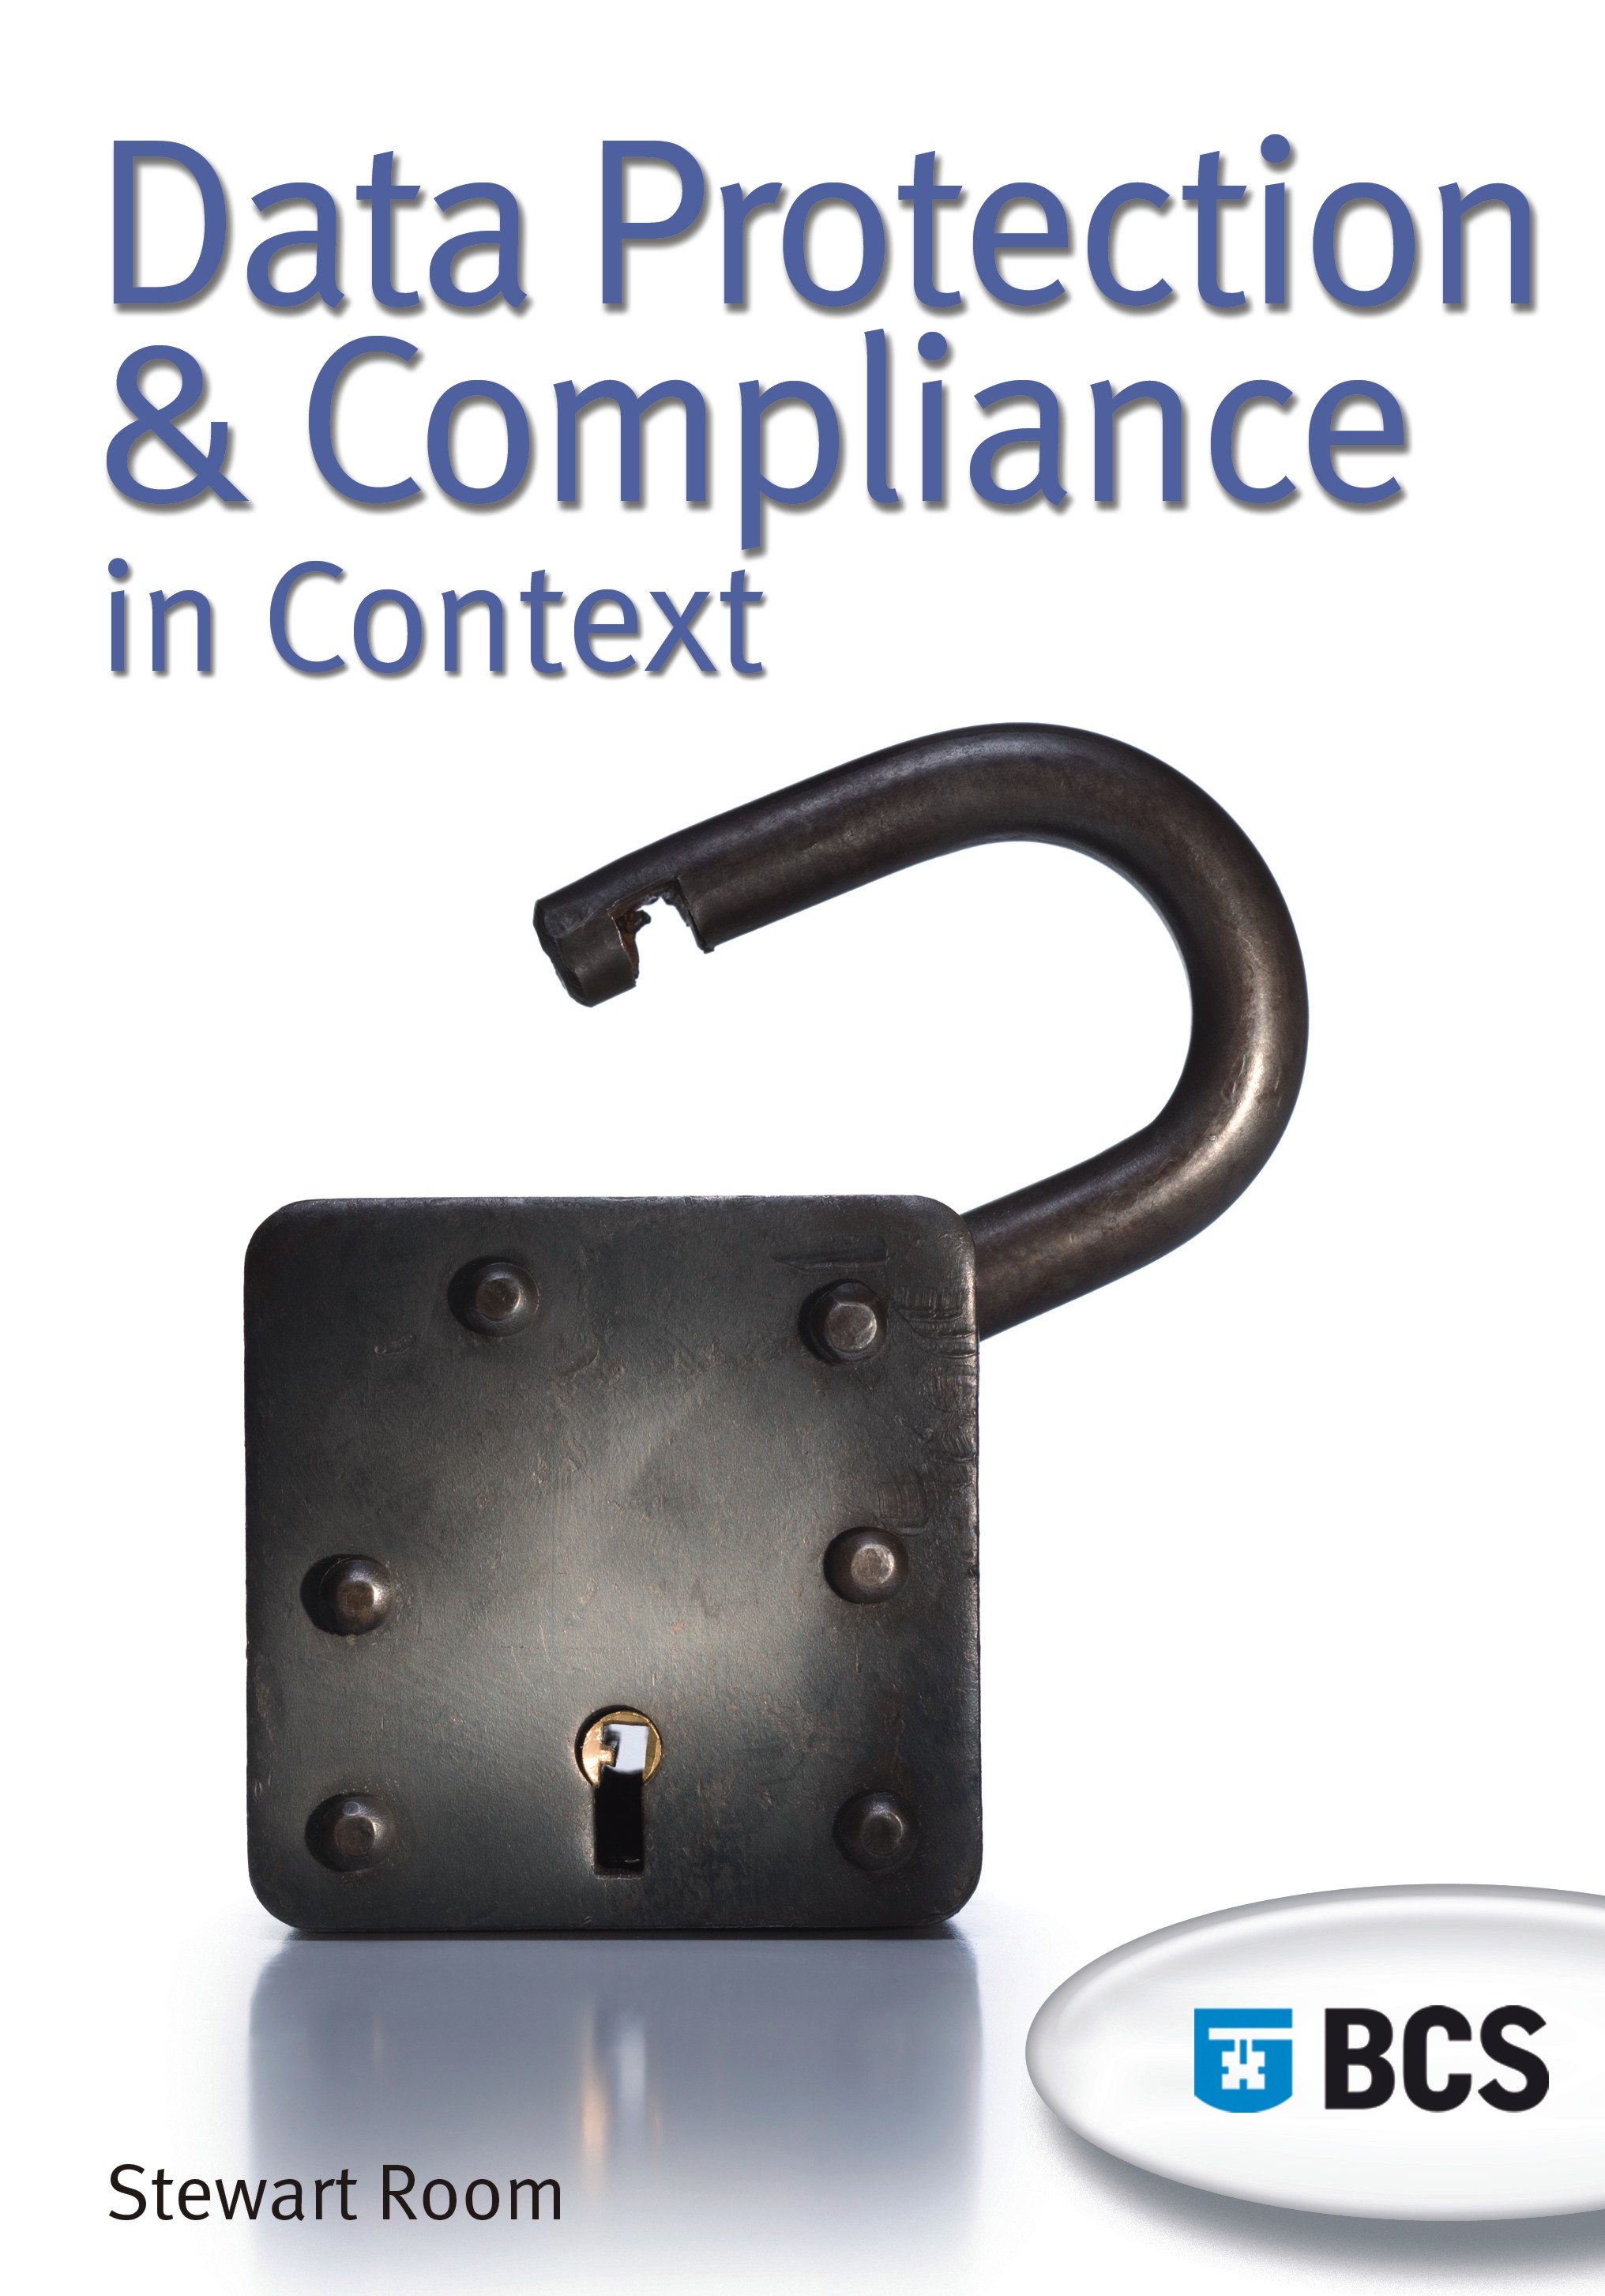 Data Protection and Compliance in Context